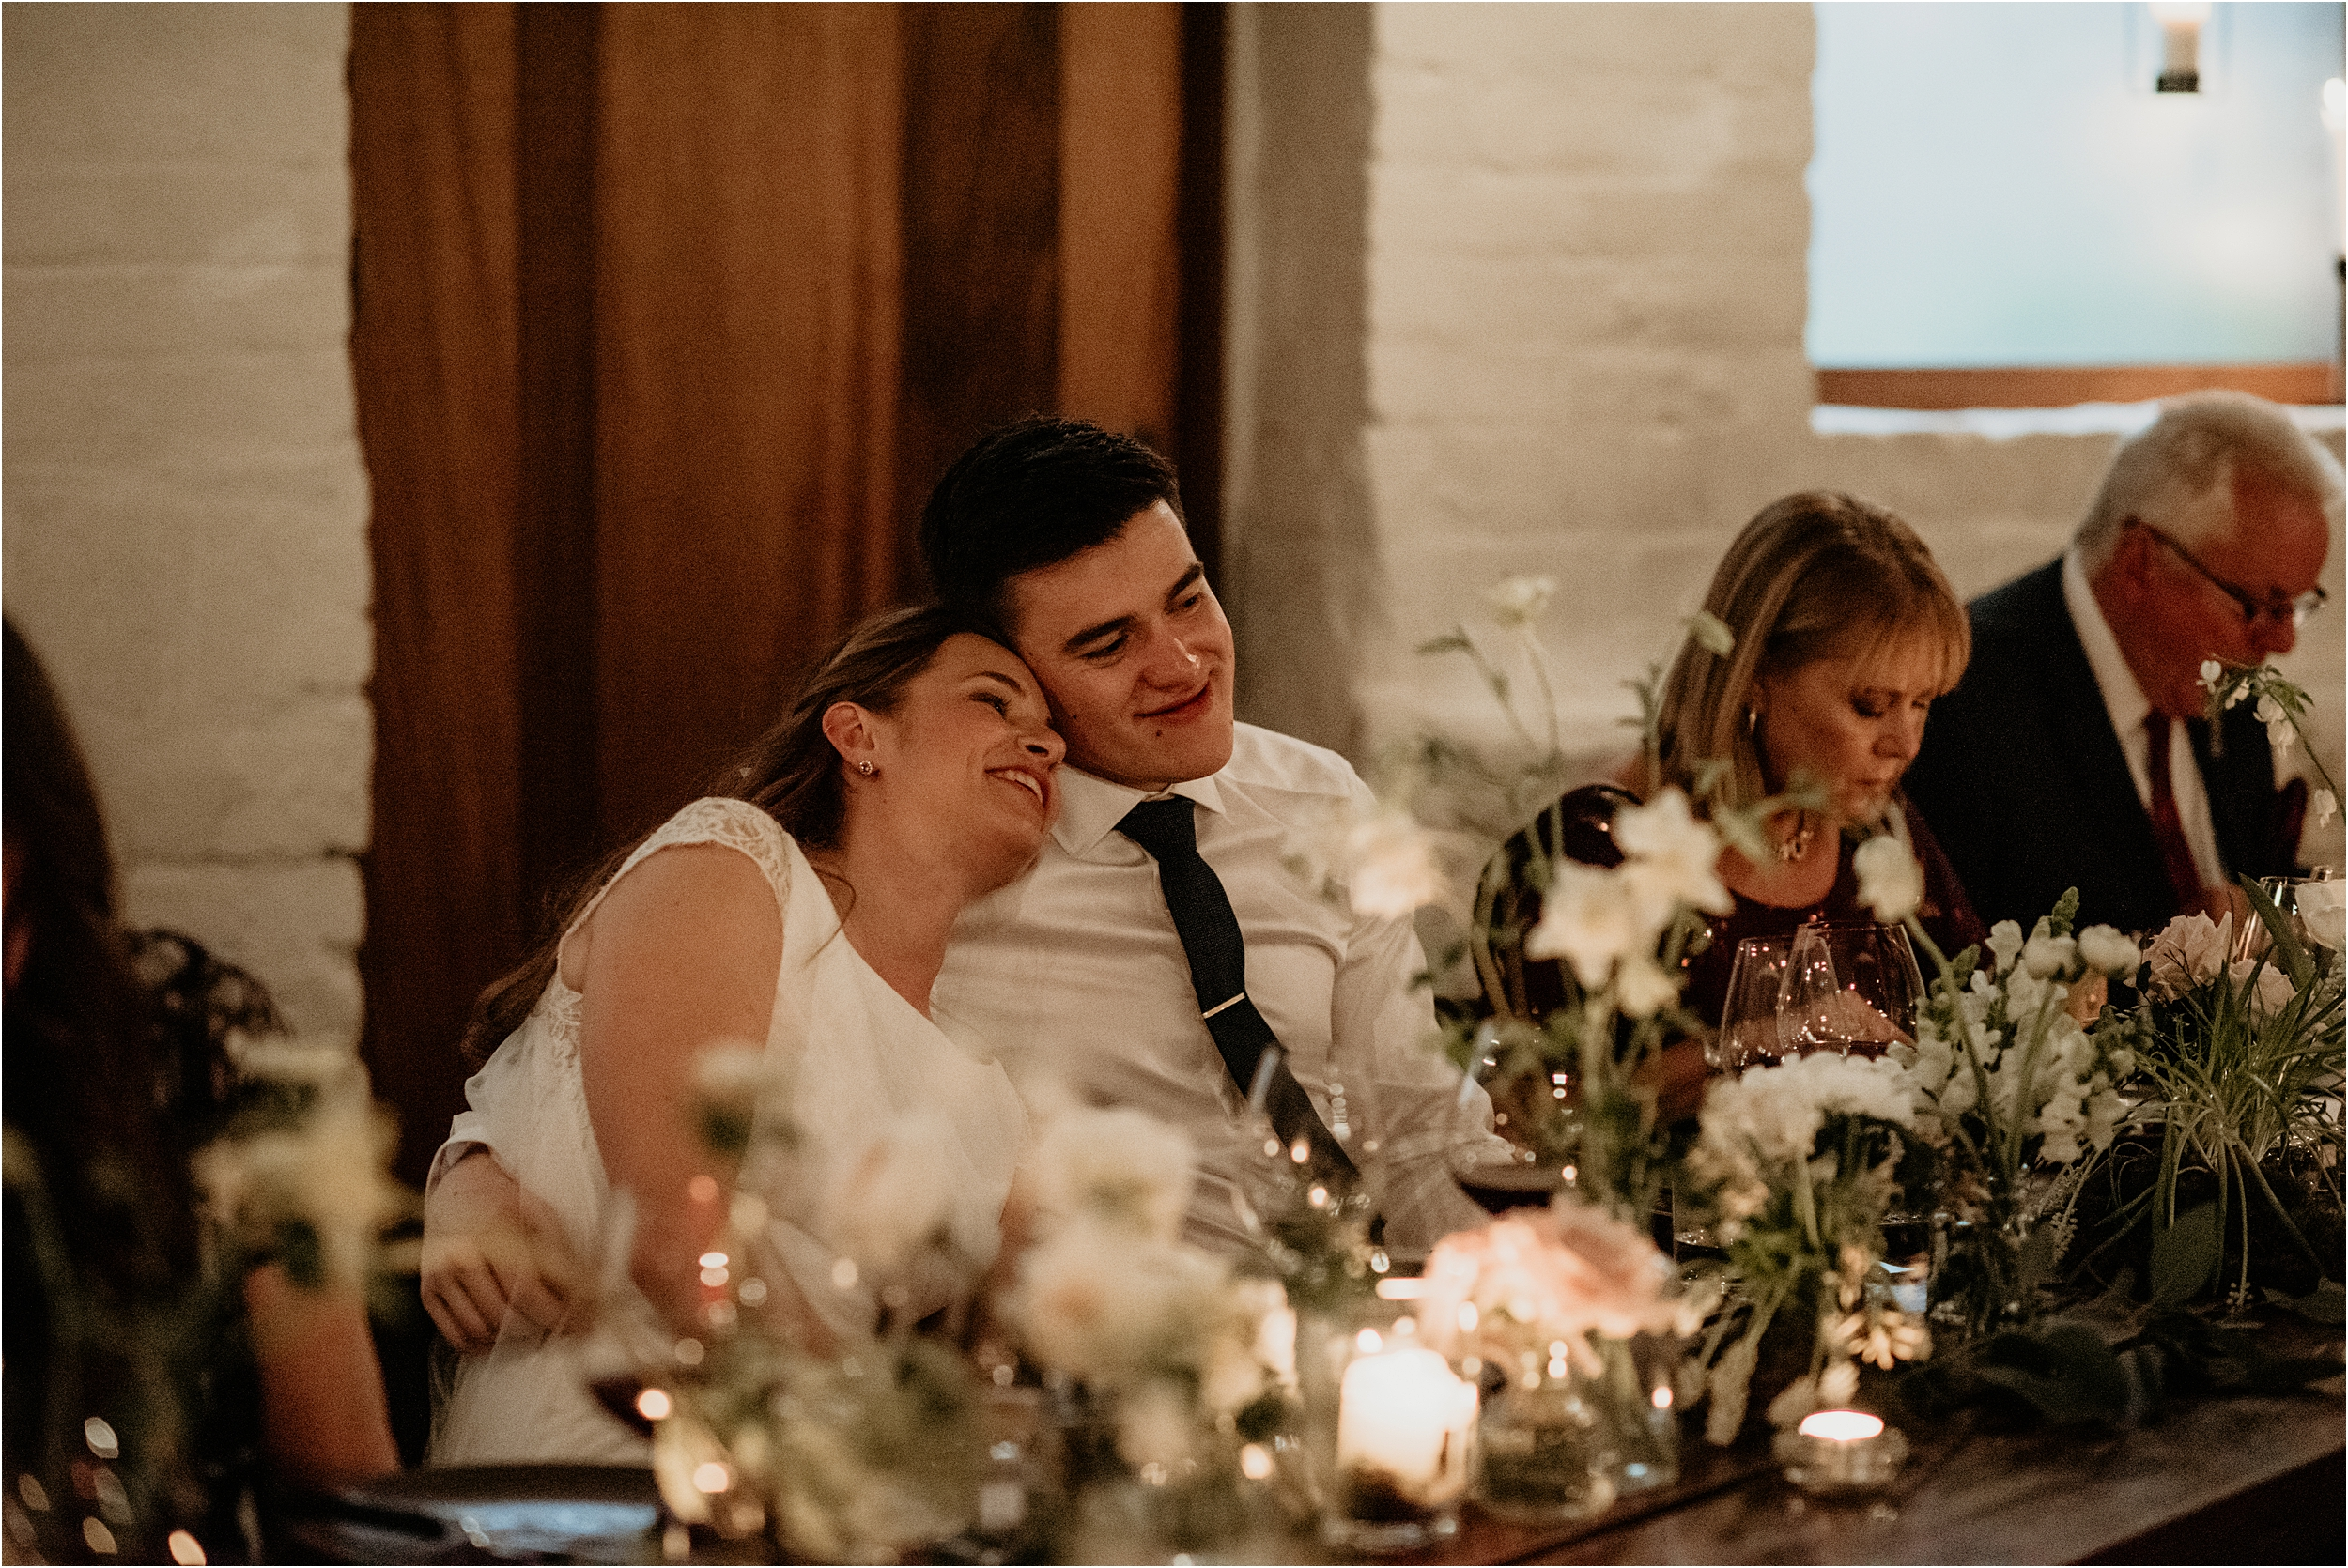 Timberyard-Edinburgh-wedding-photography__0113.jpg